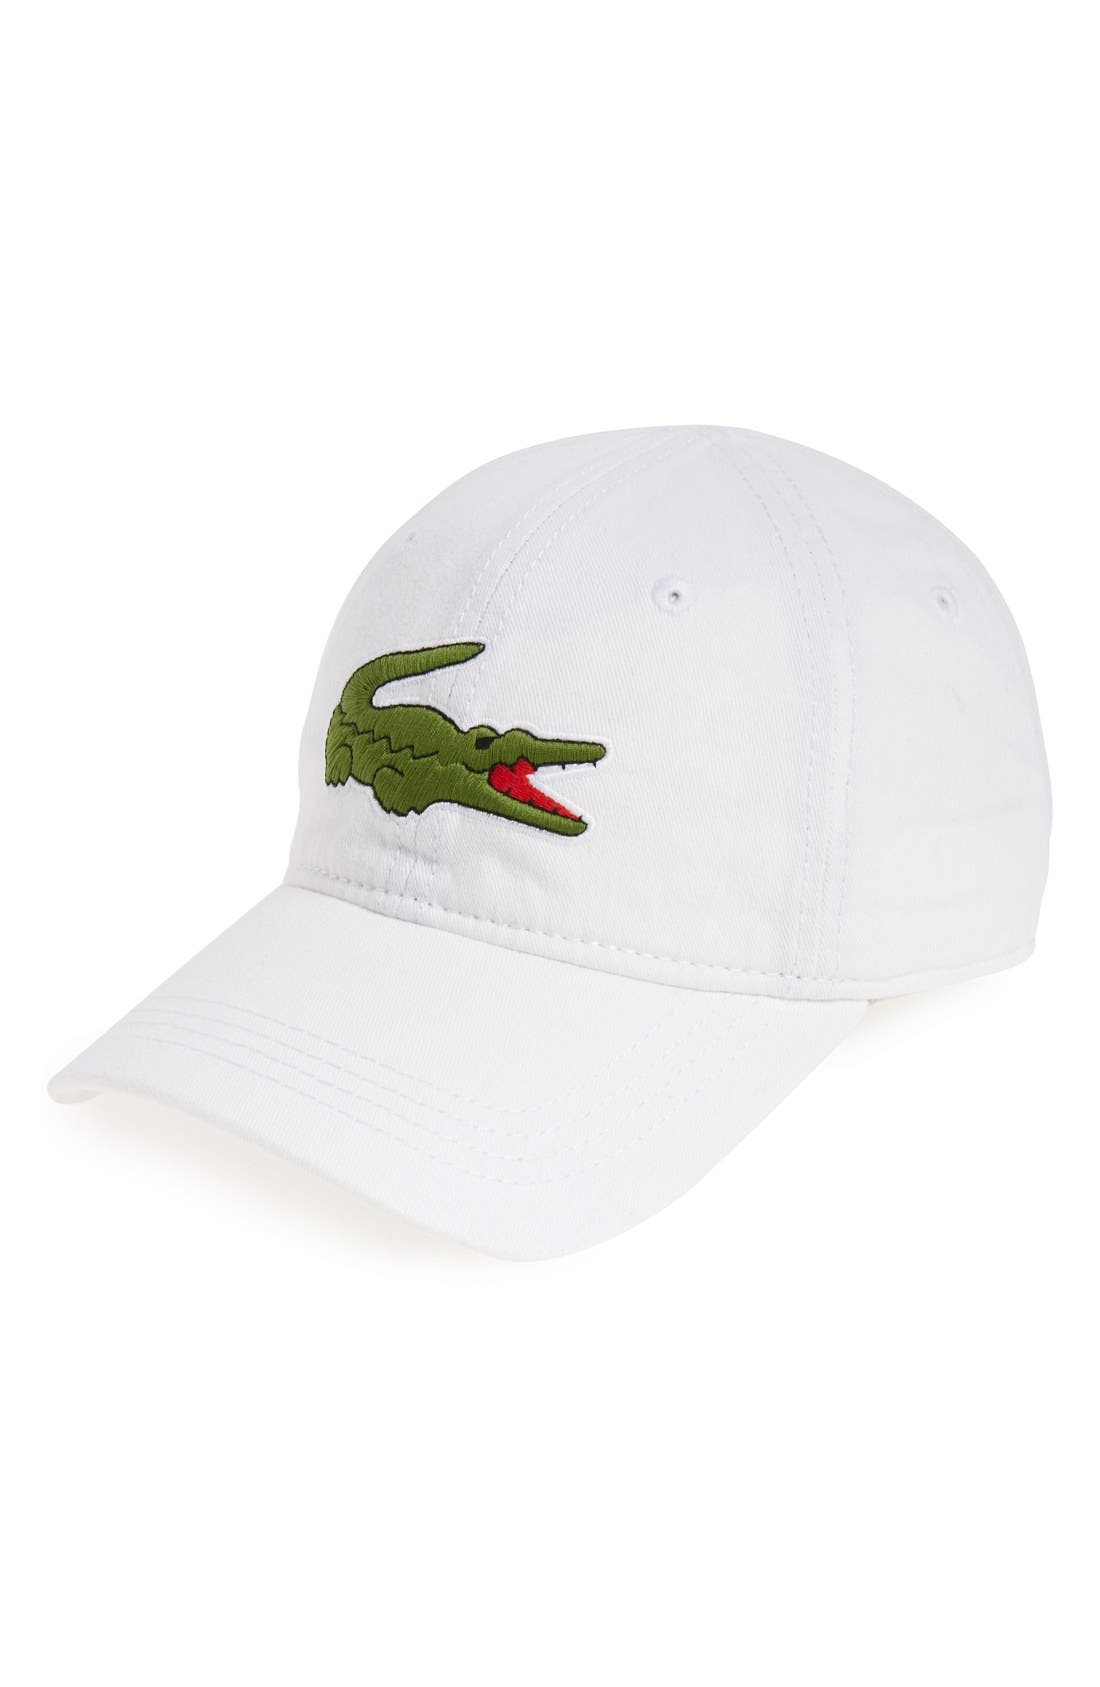 Alternate Image 1 Selected - Lacoste 'Big Croc' Logo Embroidered Cap